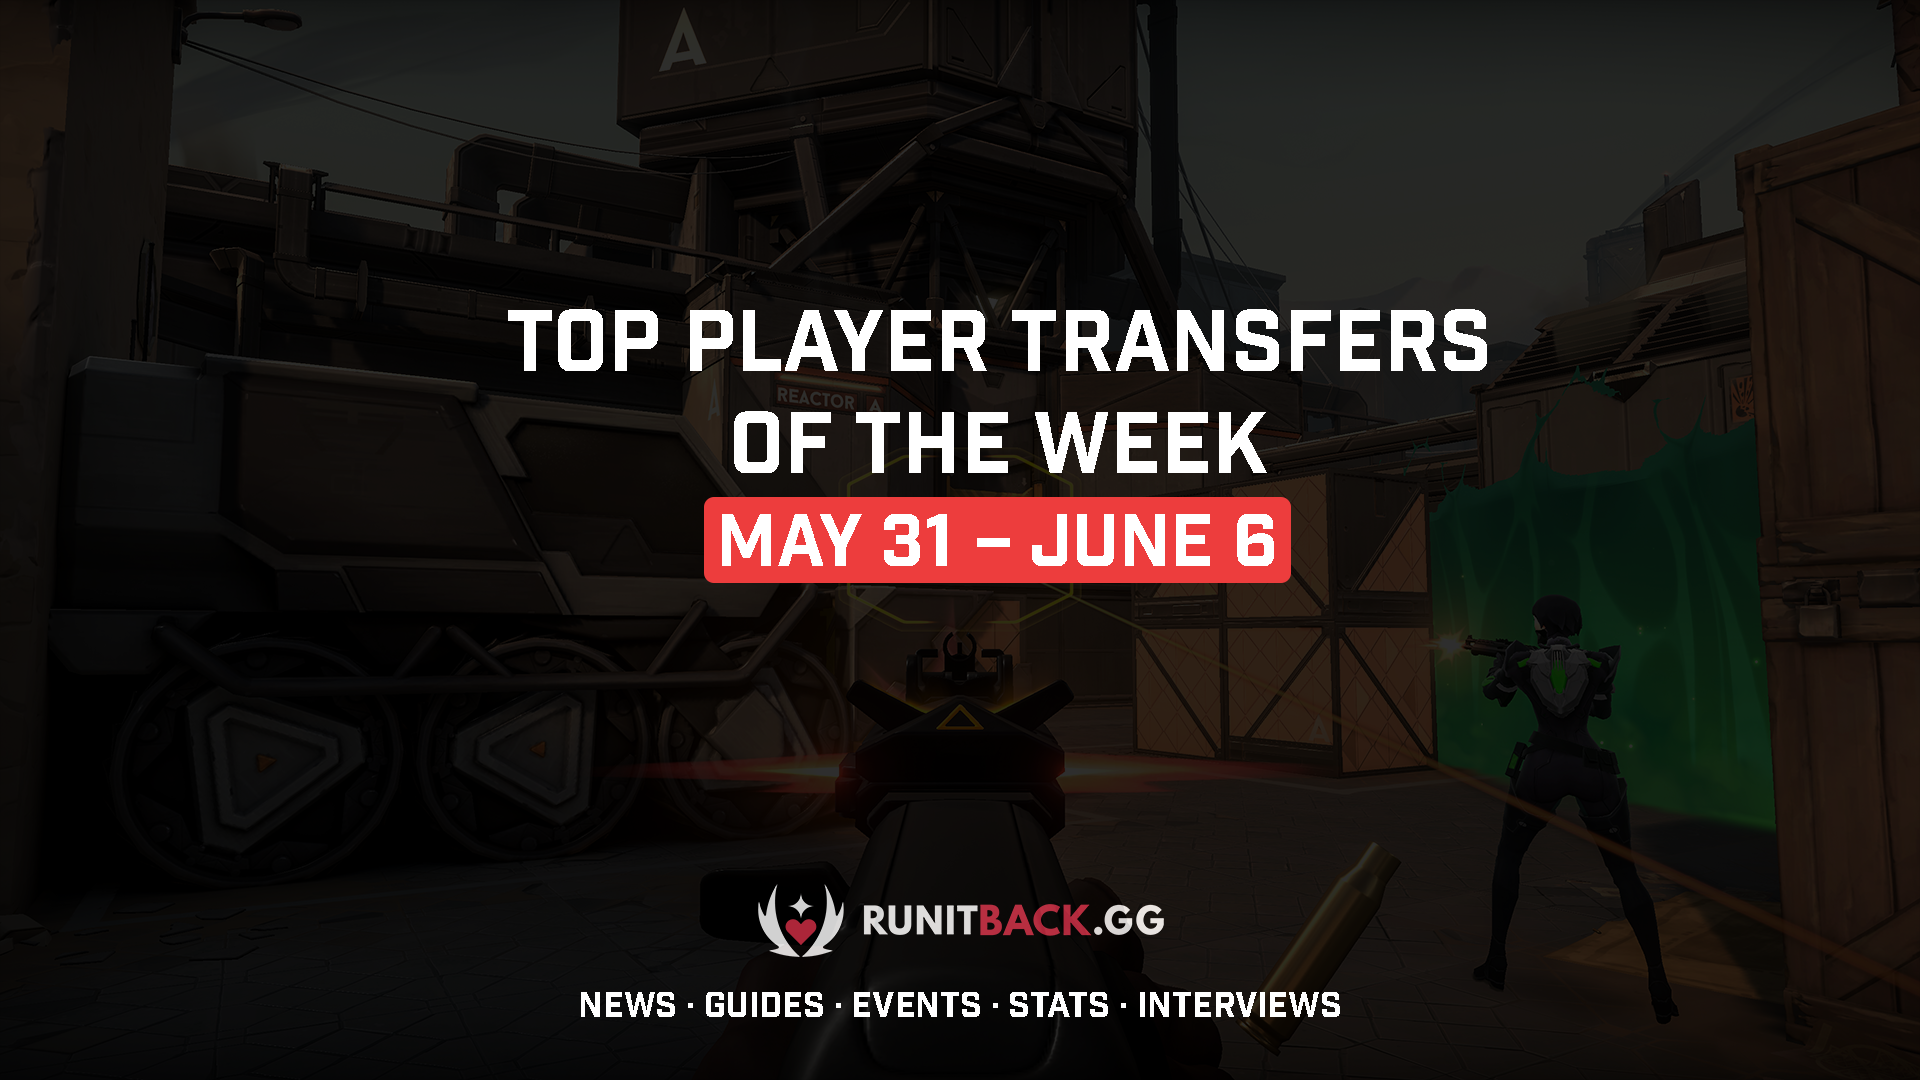 Top Player Transfers of the Week 5/31-6/6